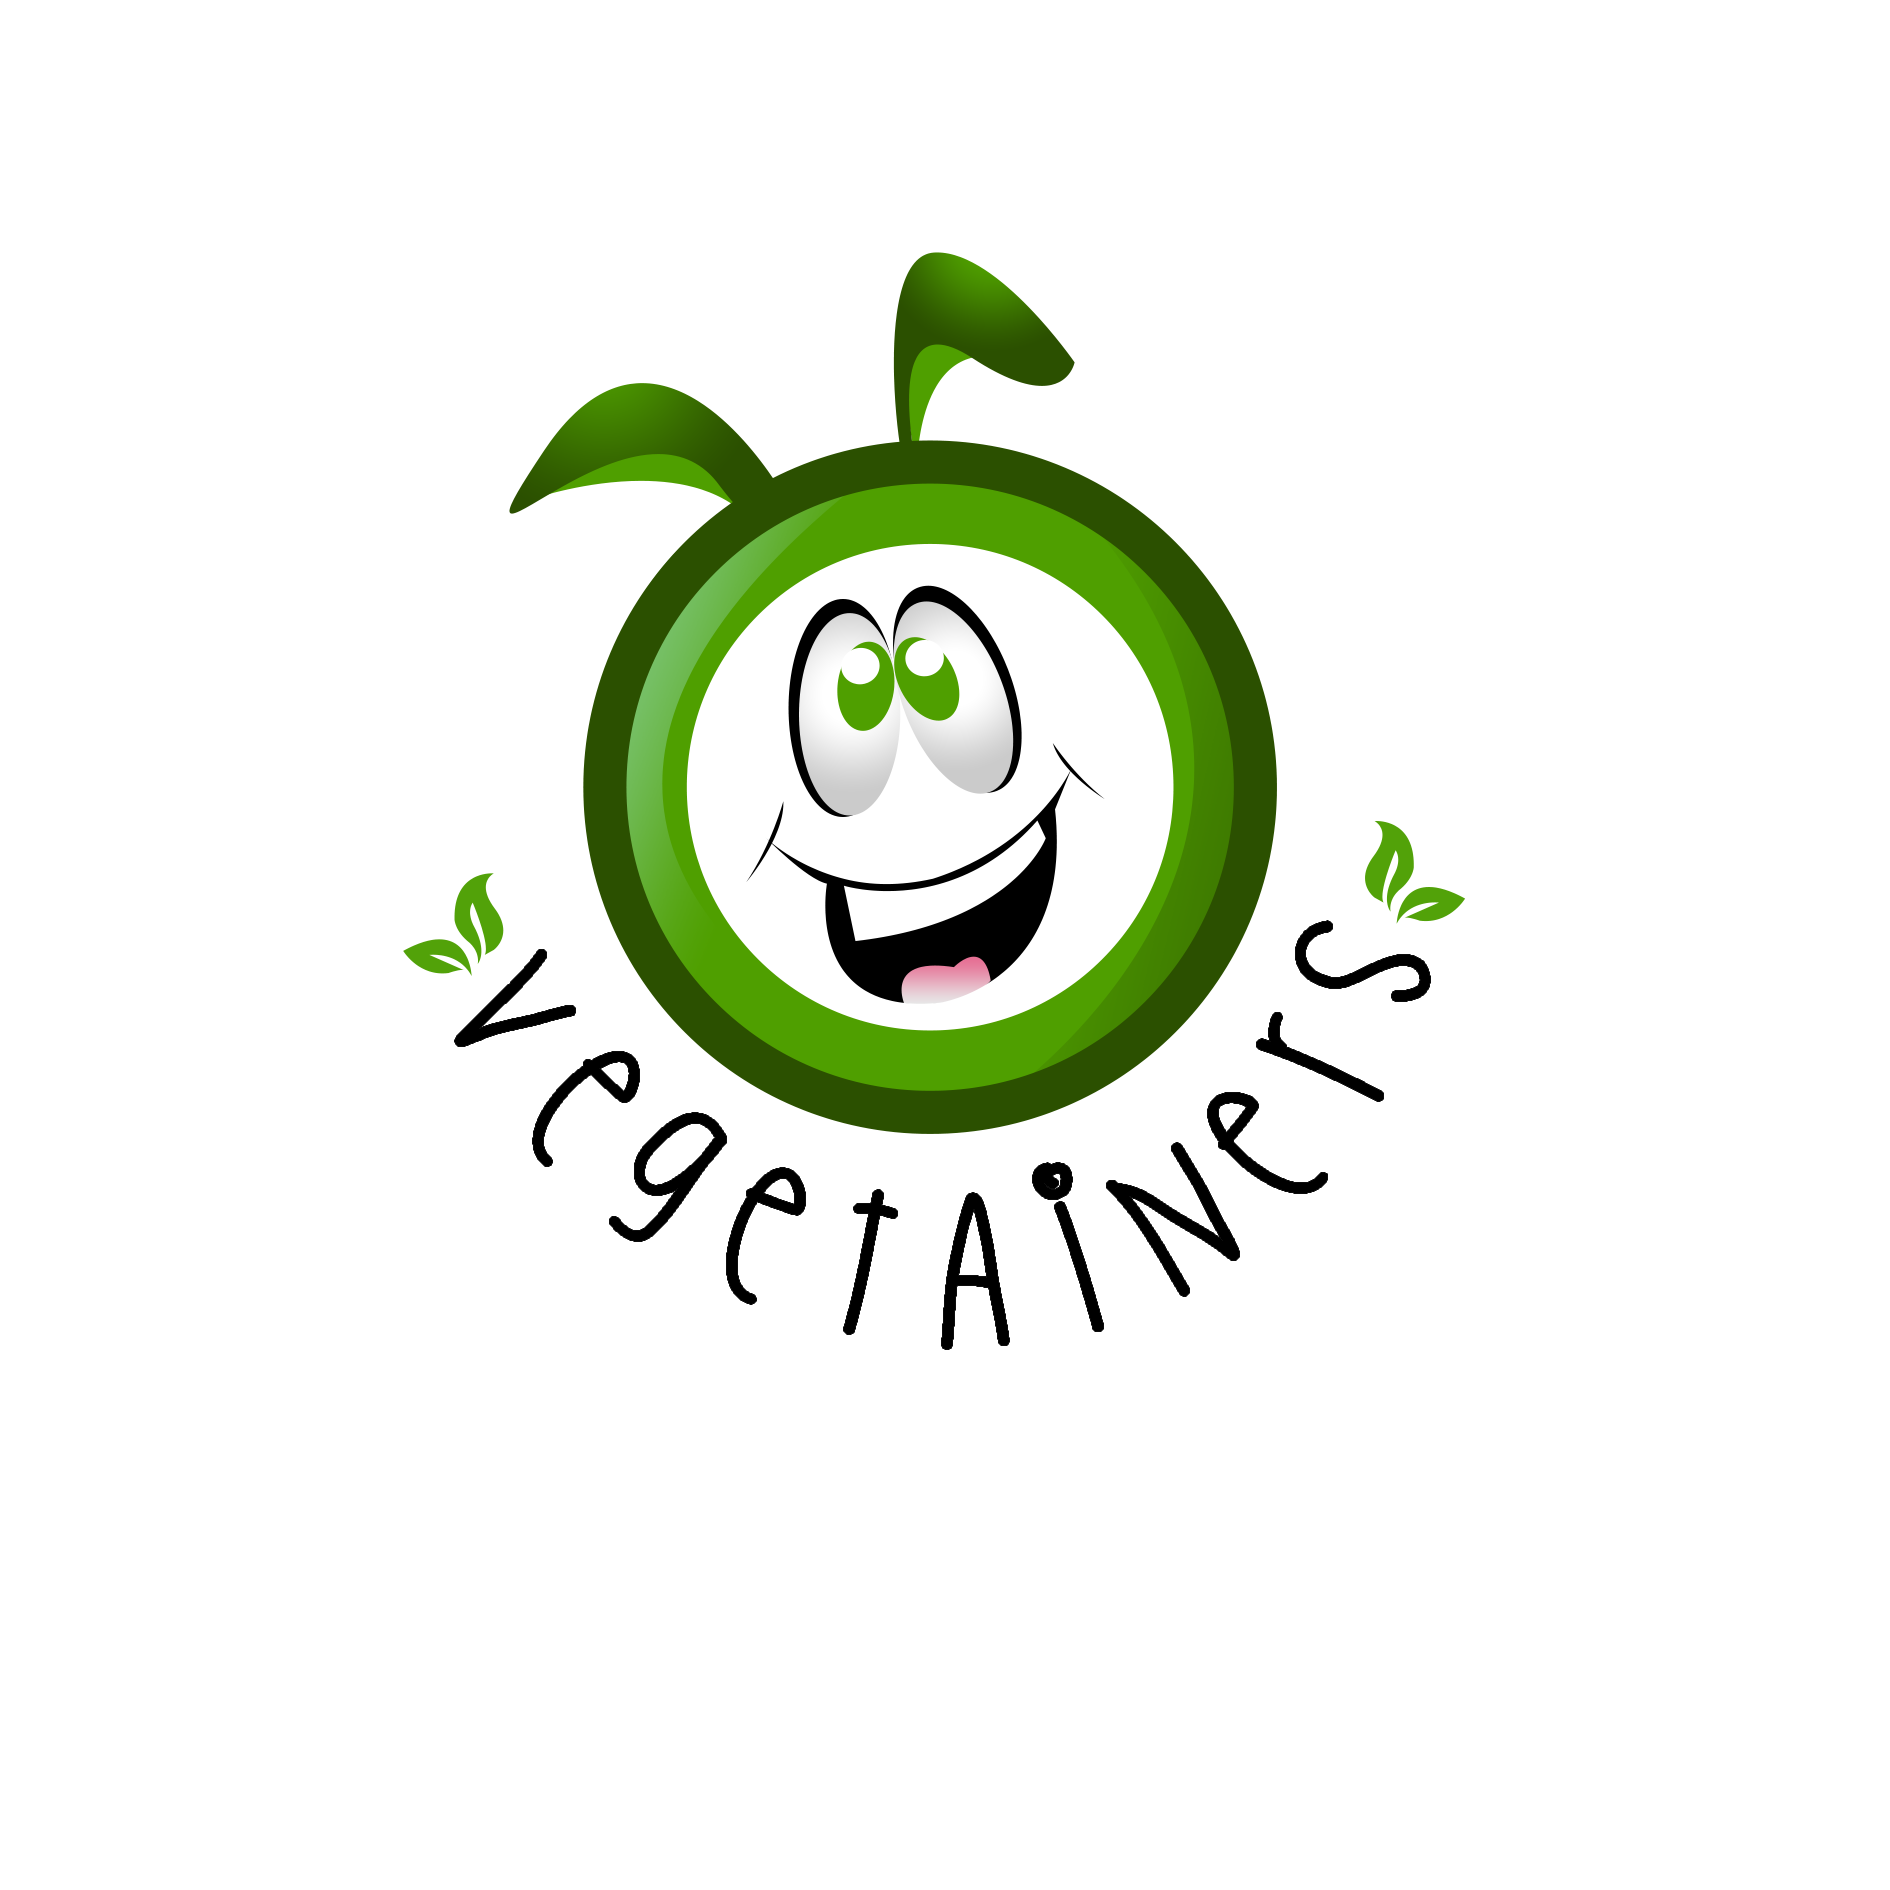 Logo for Vegetainers- an eco friendly biodegradable reusable container brand.